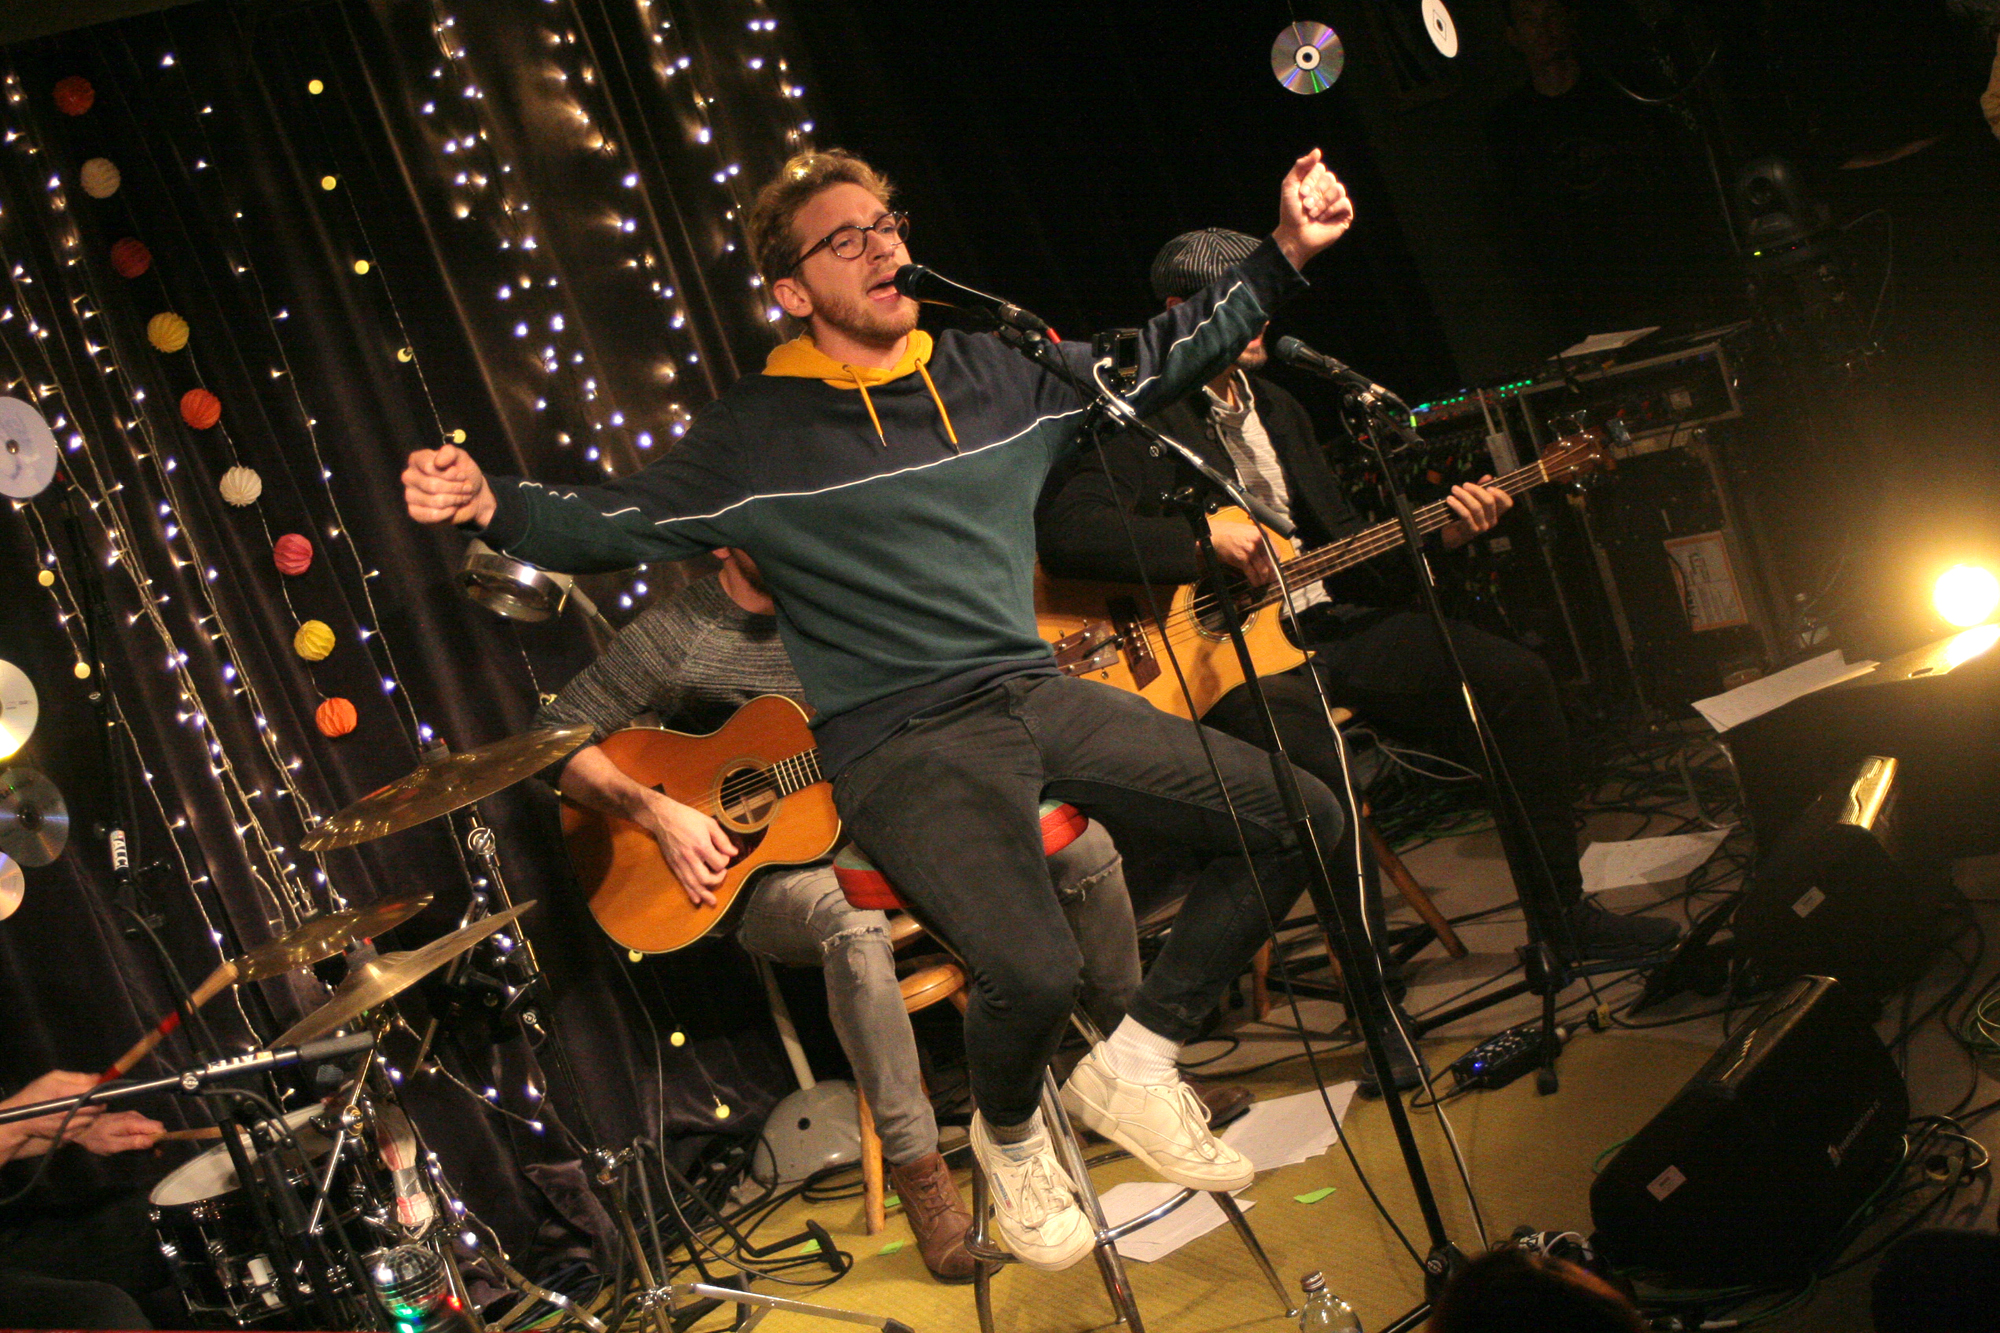 Nathan Trent @ Charity Special im Dachboden Wien, 03.12.2019 (c) miggl.at